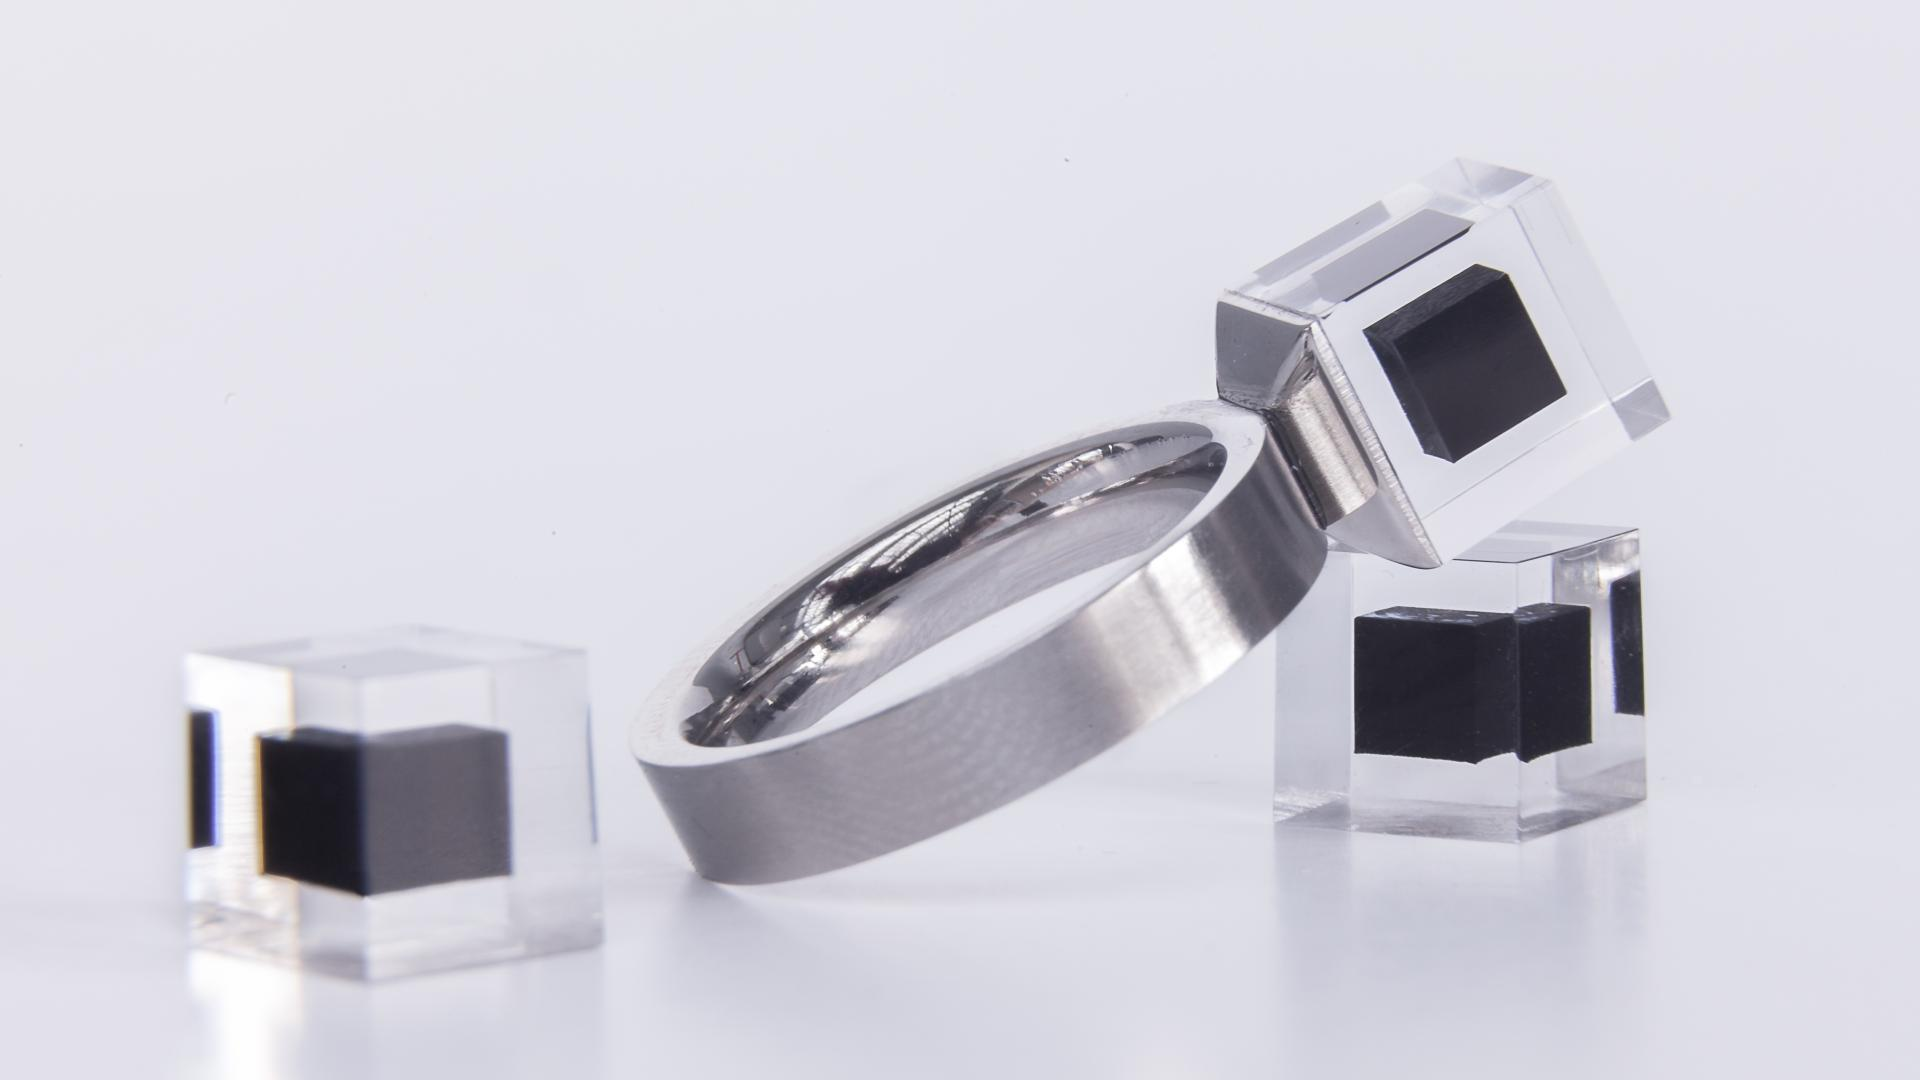 Smog Free Ring | Smog Free Project | Studio Roosegaarde